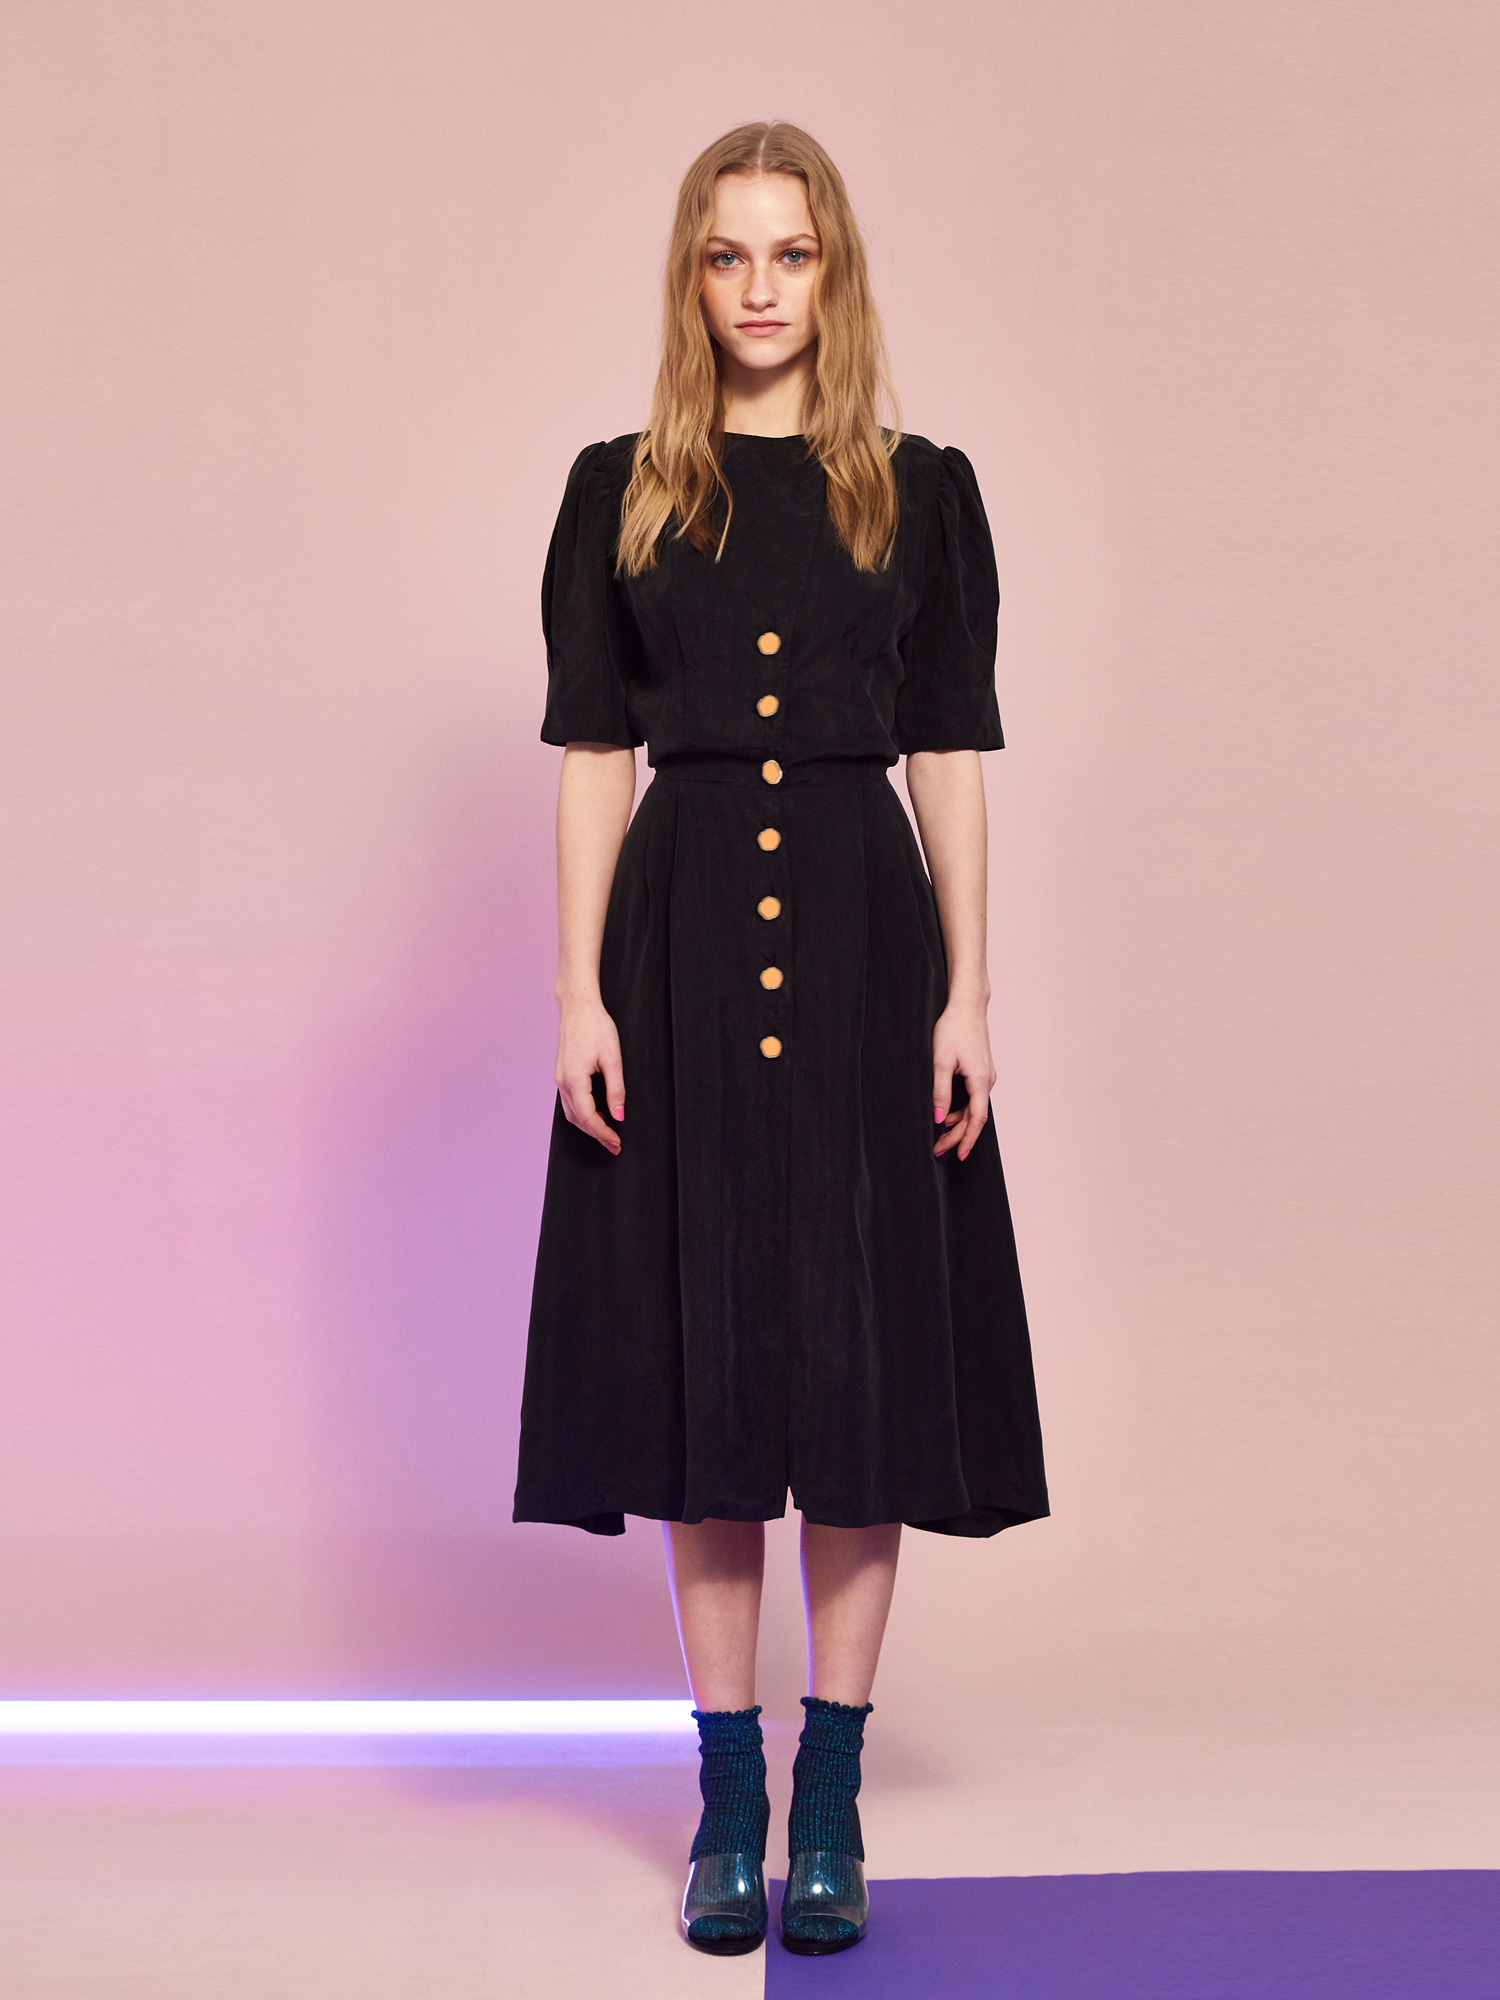 [BEST 15% OFF]Cupra Button Dress in Black